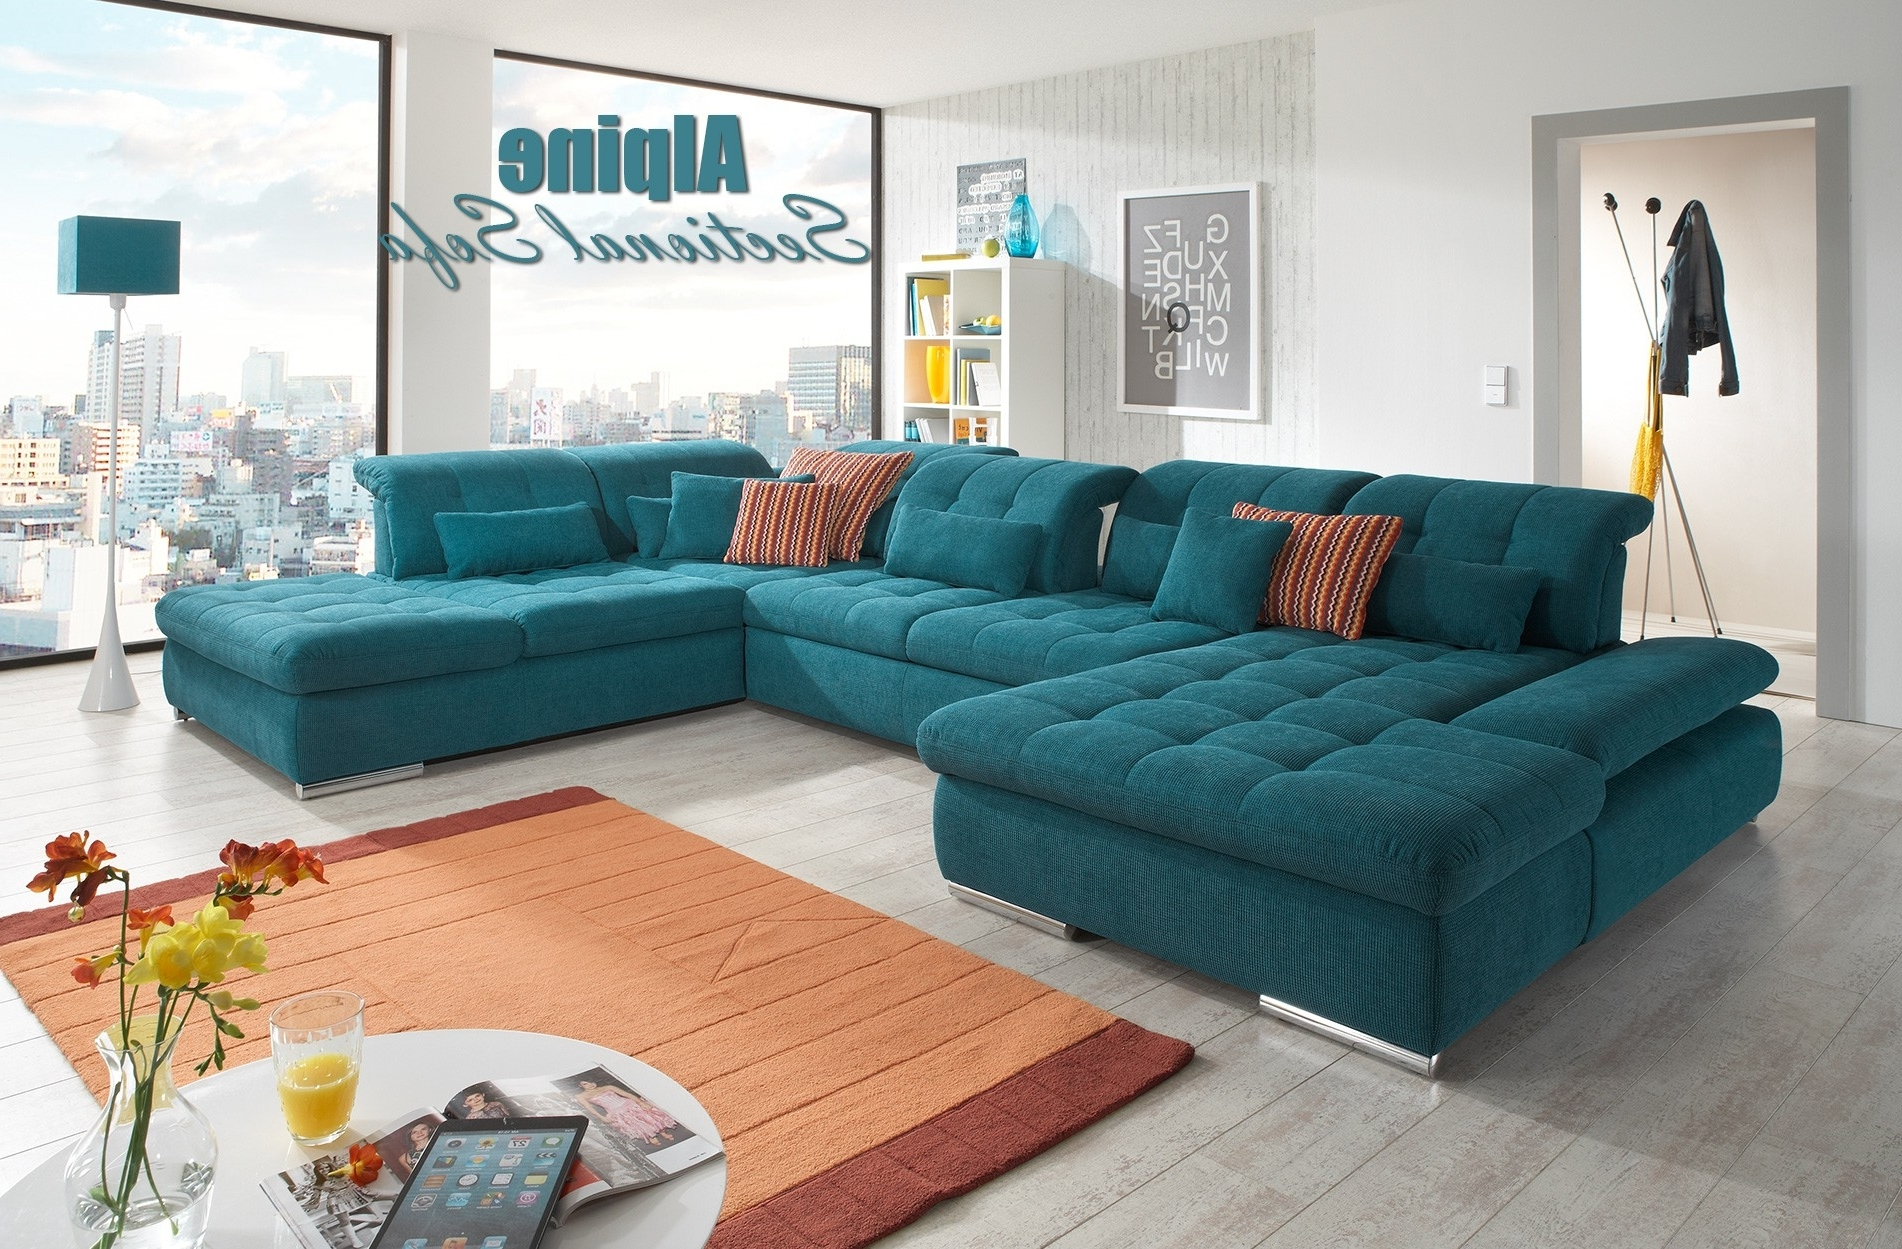 Trendy Philadelphia Sectional Sofas Within Alpine Sectional Sofa In Green Fabric (View 15 of 15)